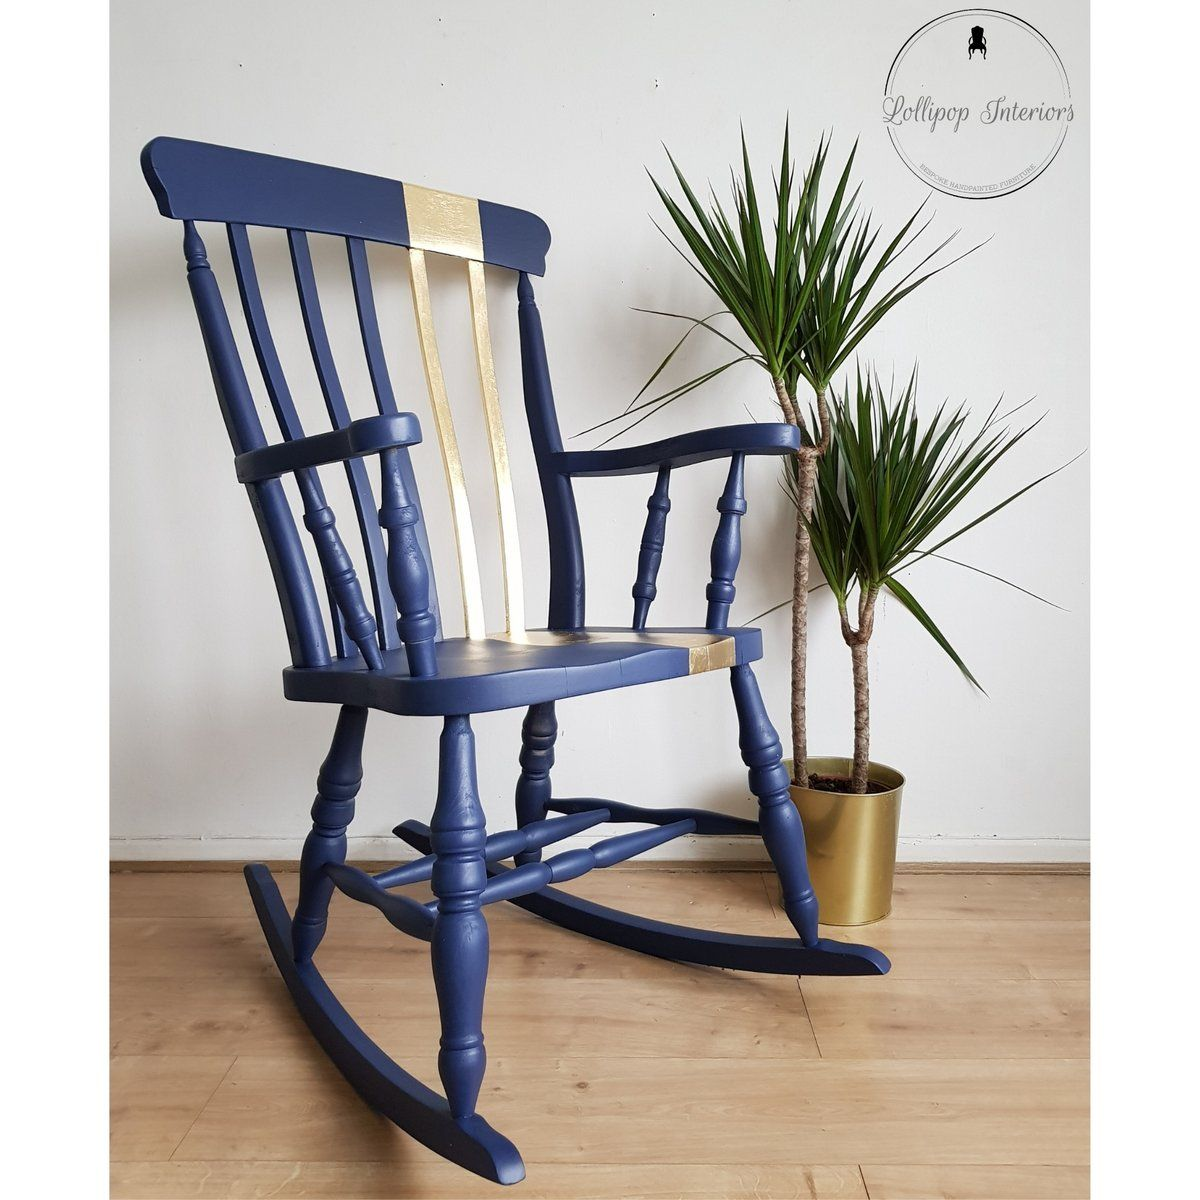 Solid pine rocking chair Rocking chair makeover, Rocking